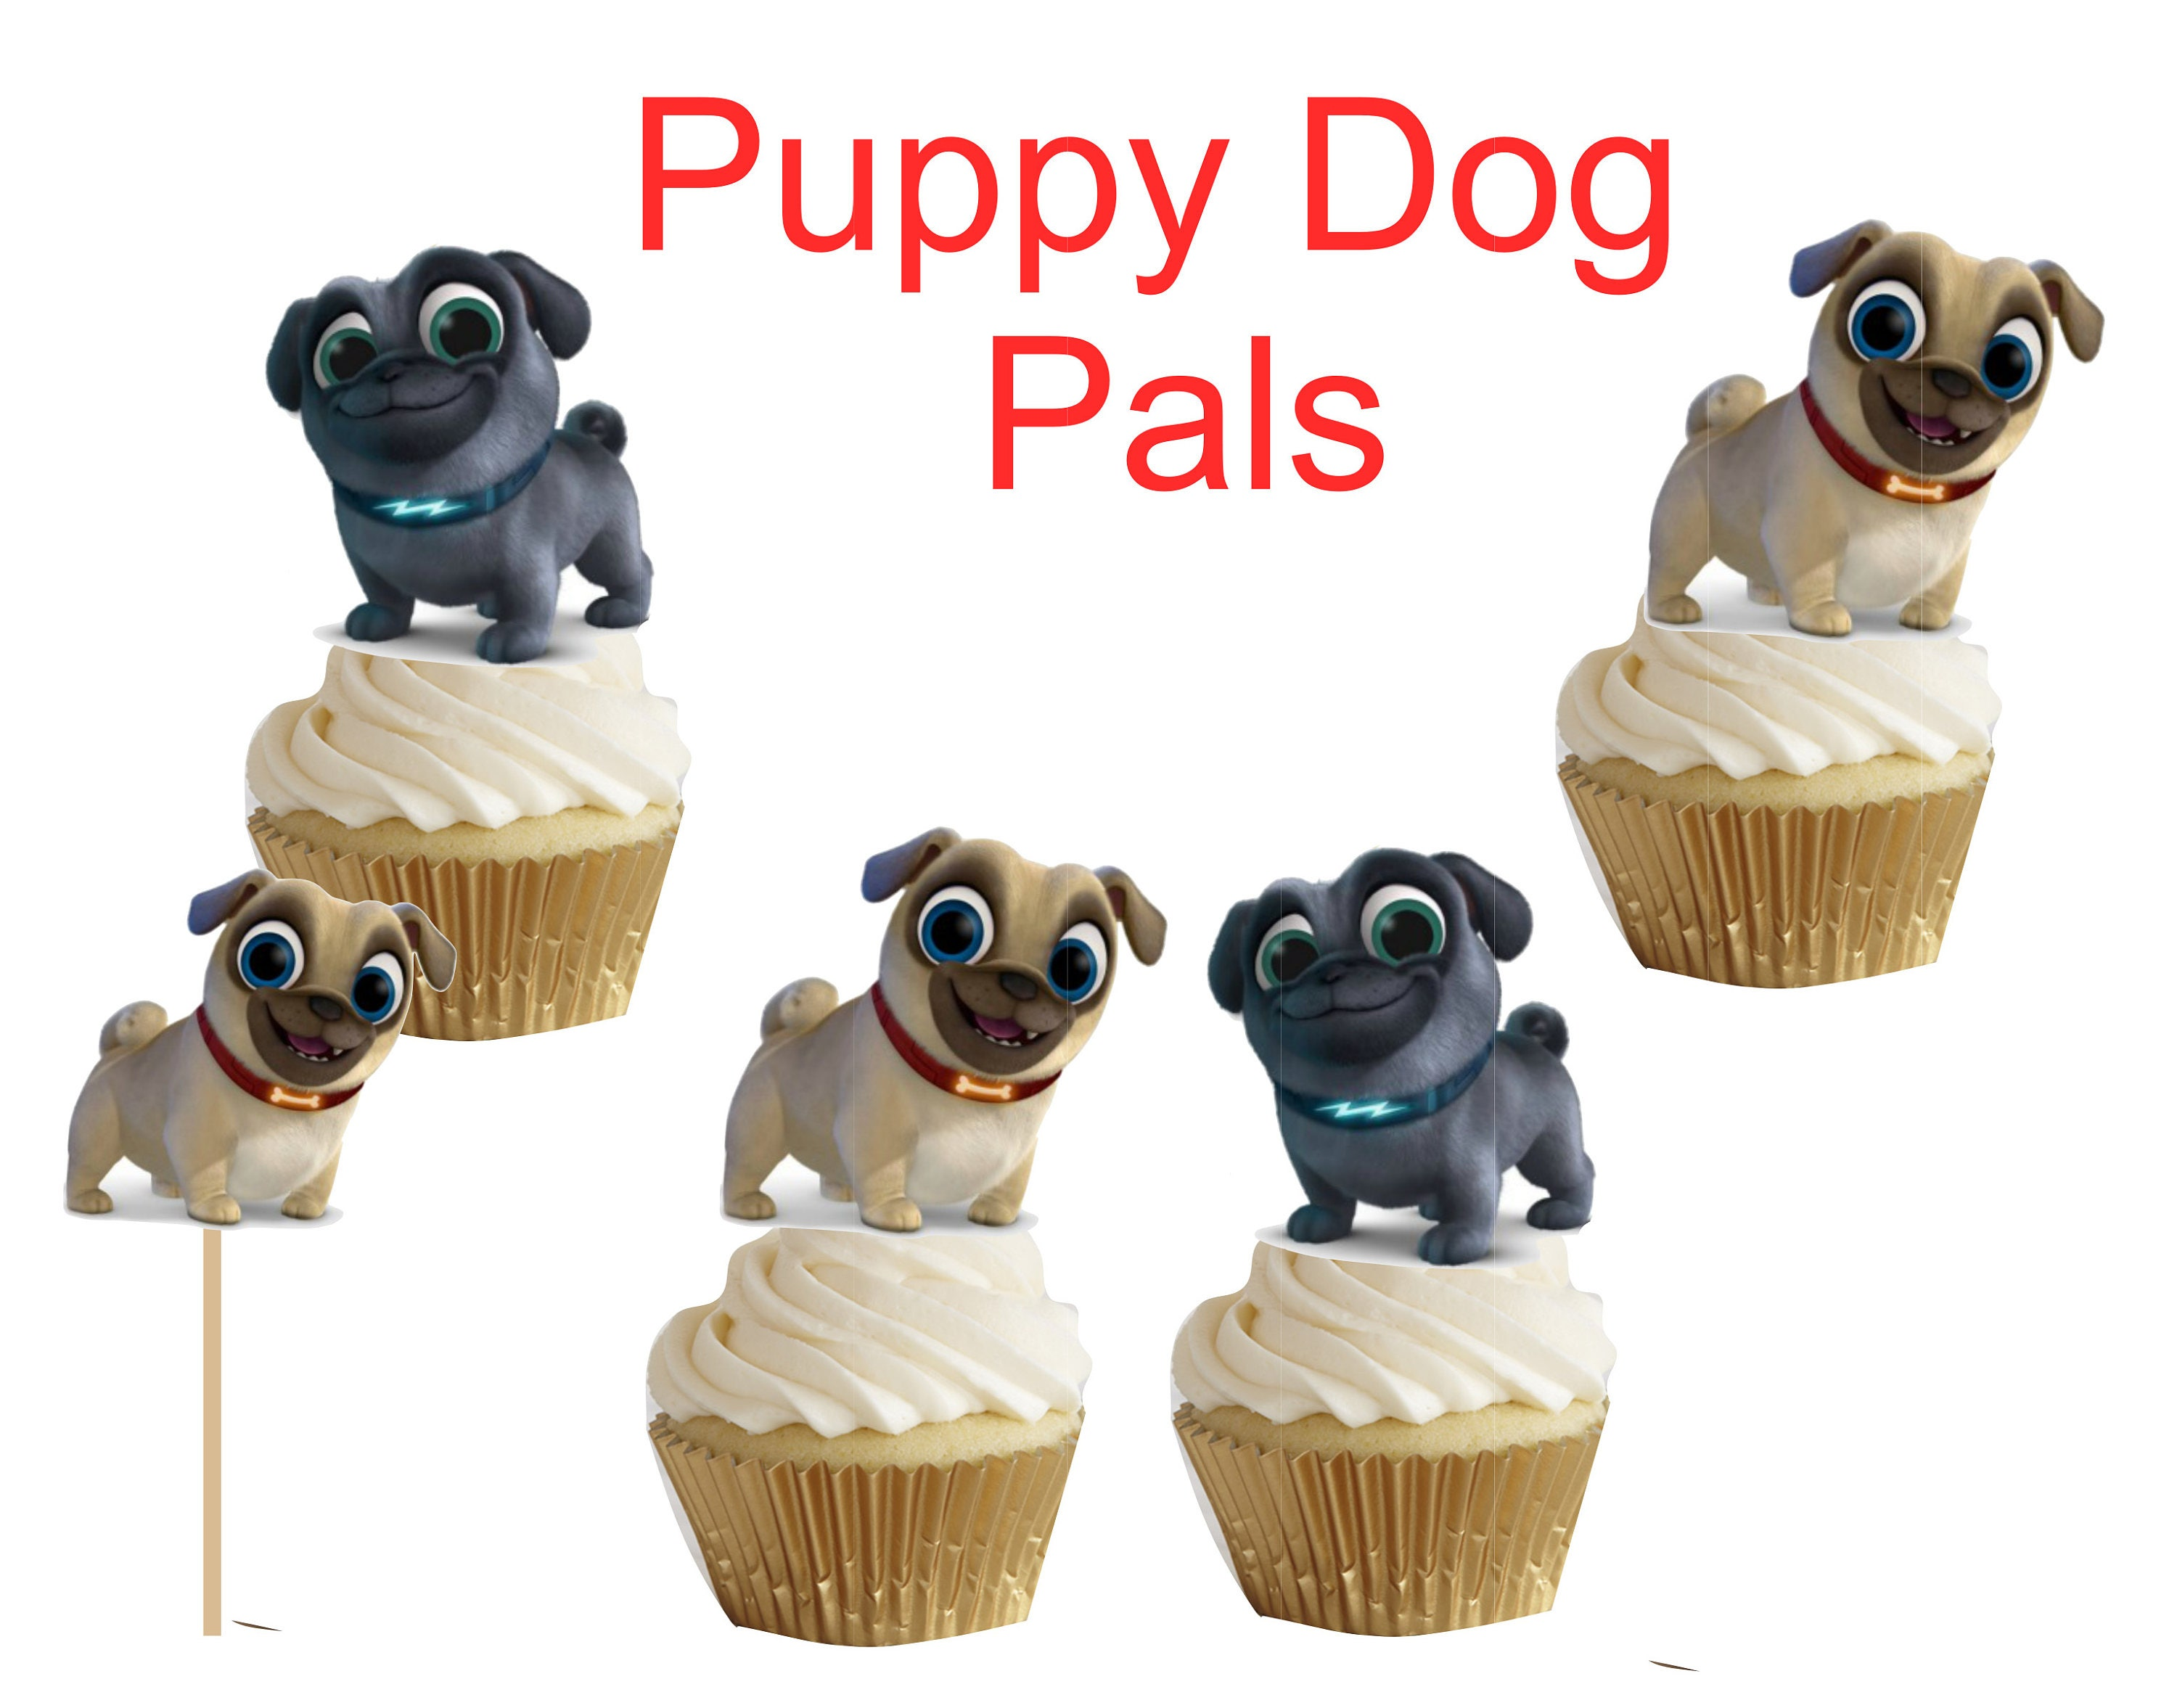 Puppy Dog Pals cakepop/cupcake toppers 24 pcs